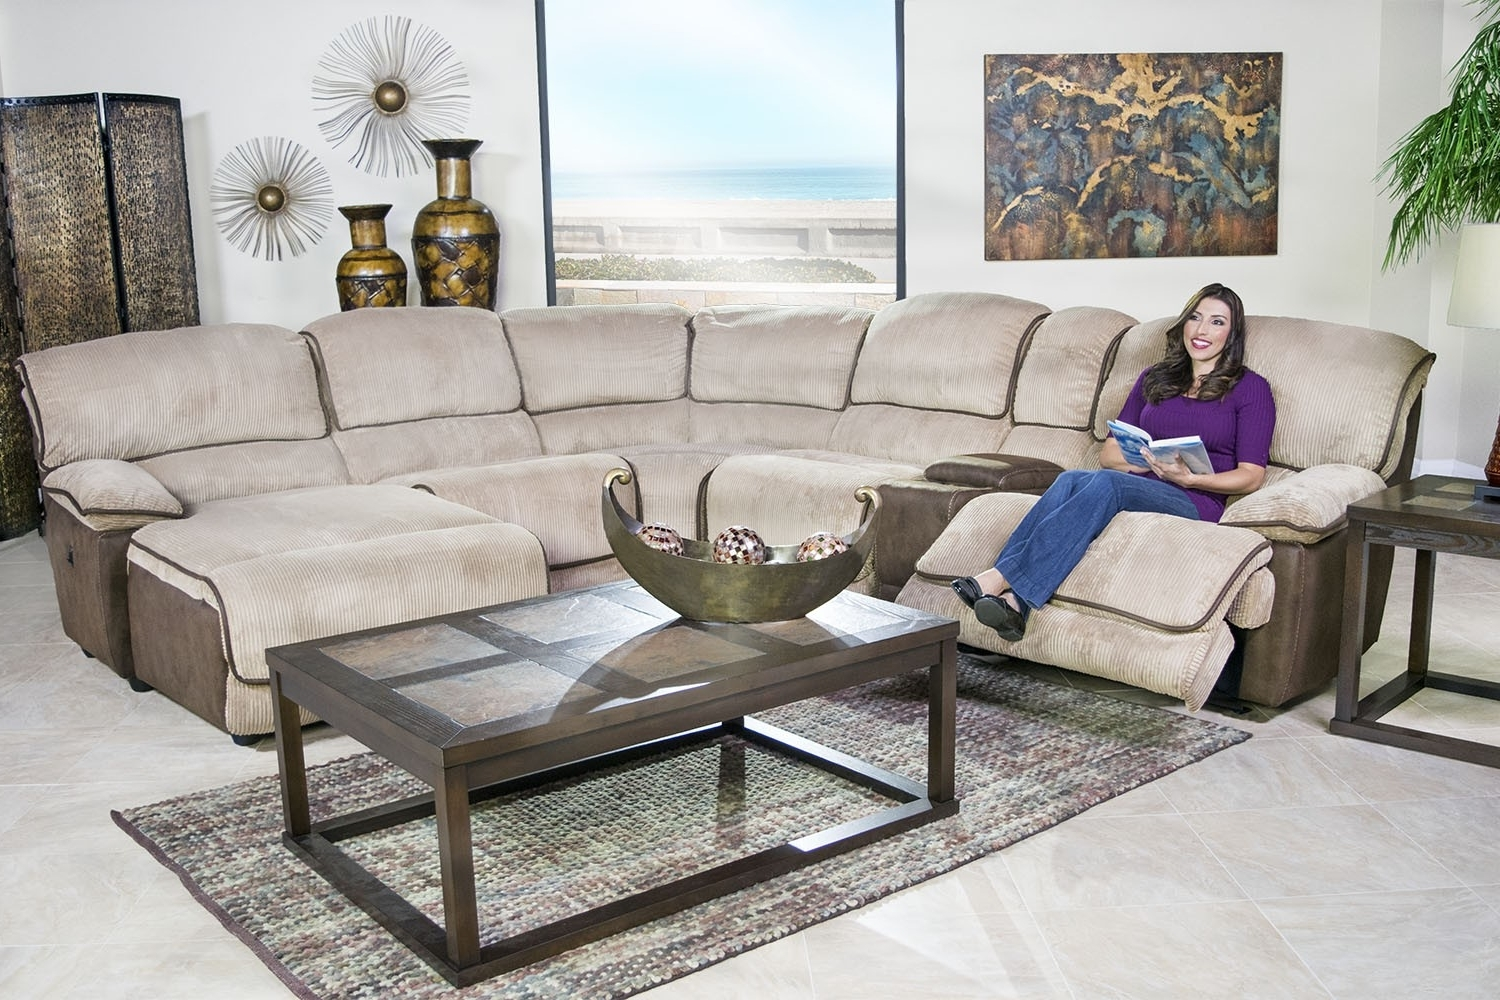 Most Recent Mor Furniture Phoenix Az – Home Design Ideas And Pictures Pertaining To Phoenix Arizona Sectional Sofas (View 18 of 20)